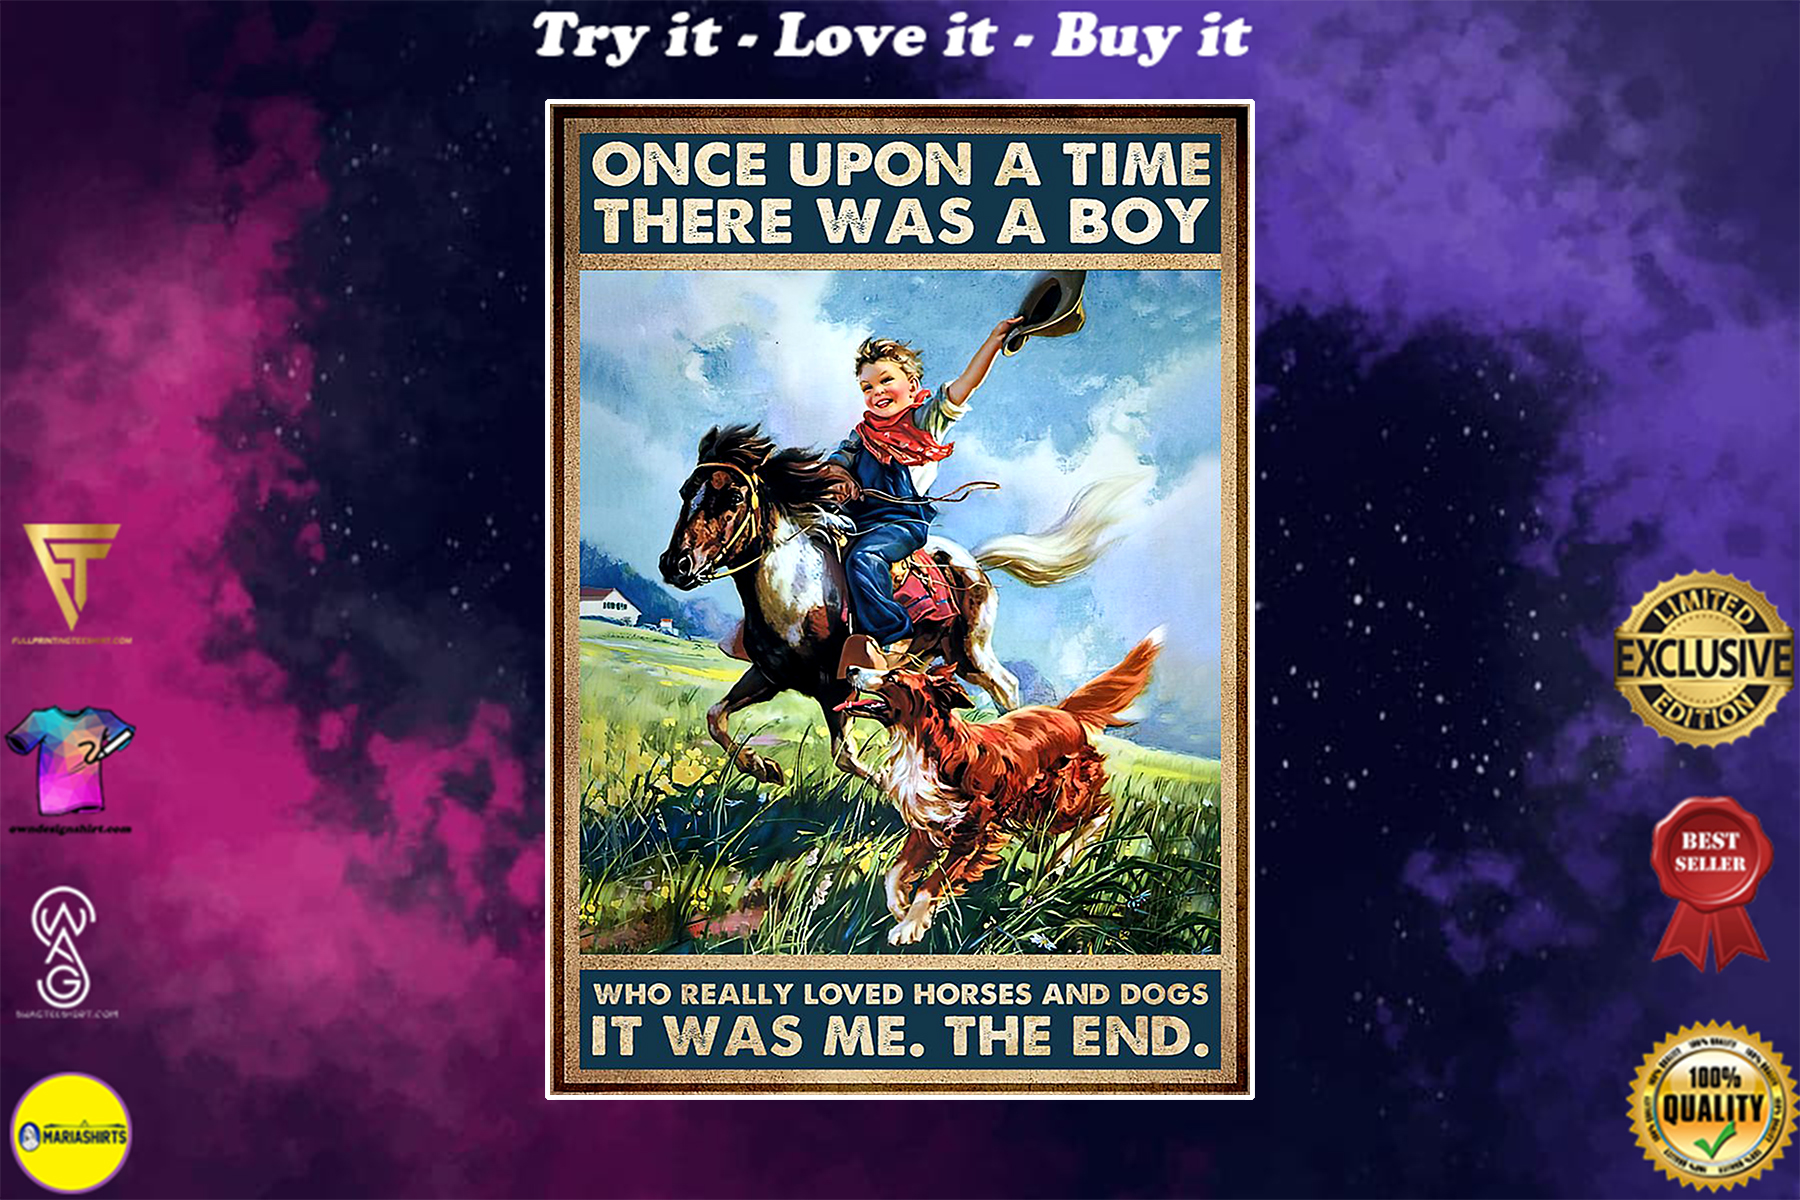 once upon a time there was a boy who really loved horses and dogs poster